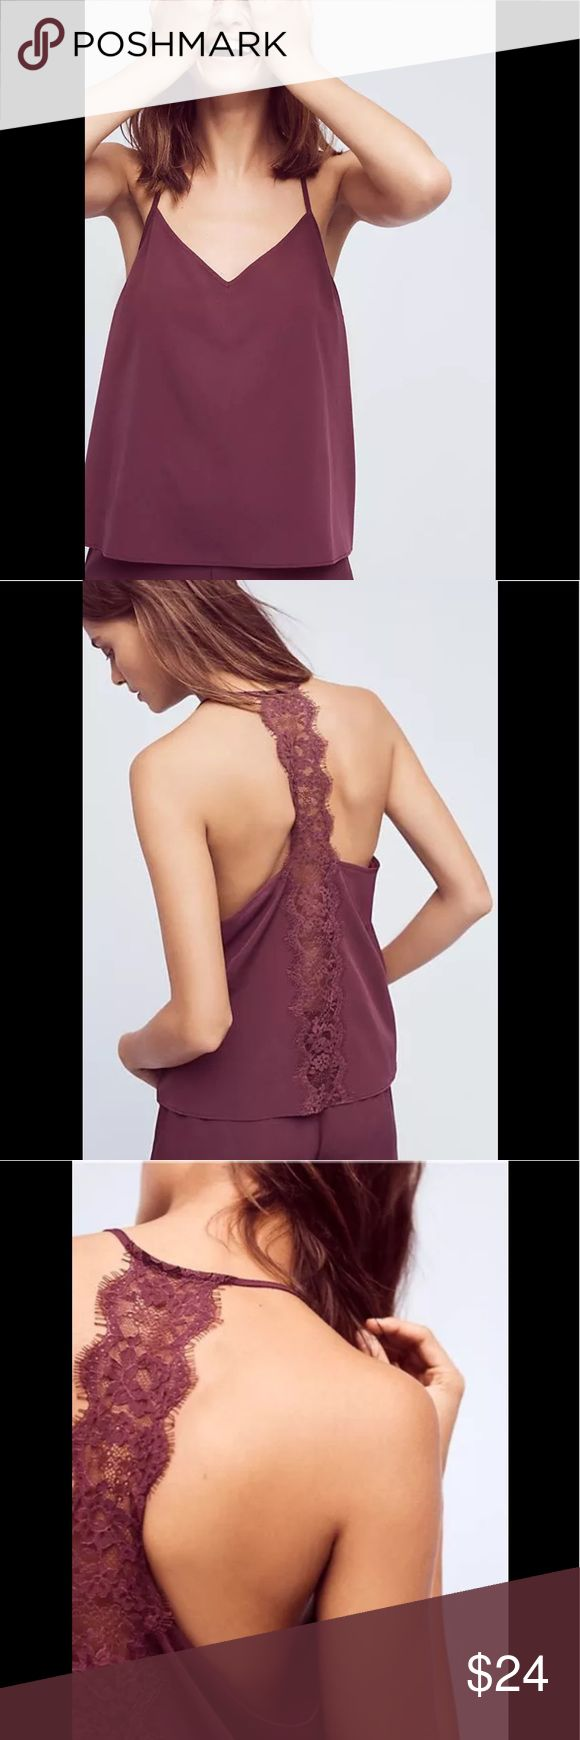 """Anthropologie Aurora Lacy Camisole Eloise XS NEW Anthropologie Aurora Lacy Camisole by Eloise XS NEW Wine 🌻Brand New Condition without tags. Lace detail on back. Pullover styling. Hand wash Polyester Style No. 39846829  » Measured Flat; Bust: 16.5"""" Falls approx. (adjustable shoulder straps)22"""" from shoulder » I only sell new items! Anthropologie Intimates & Sleepwear Chemises & Slips"""